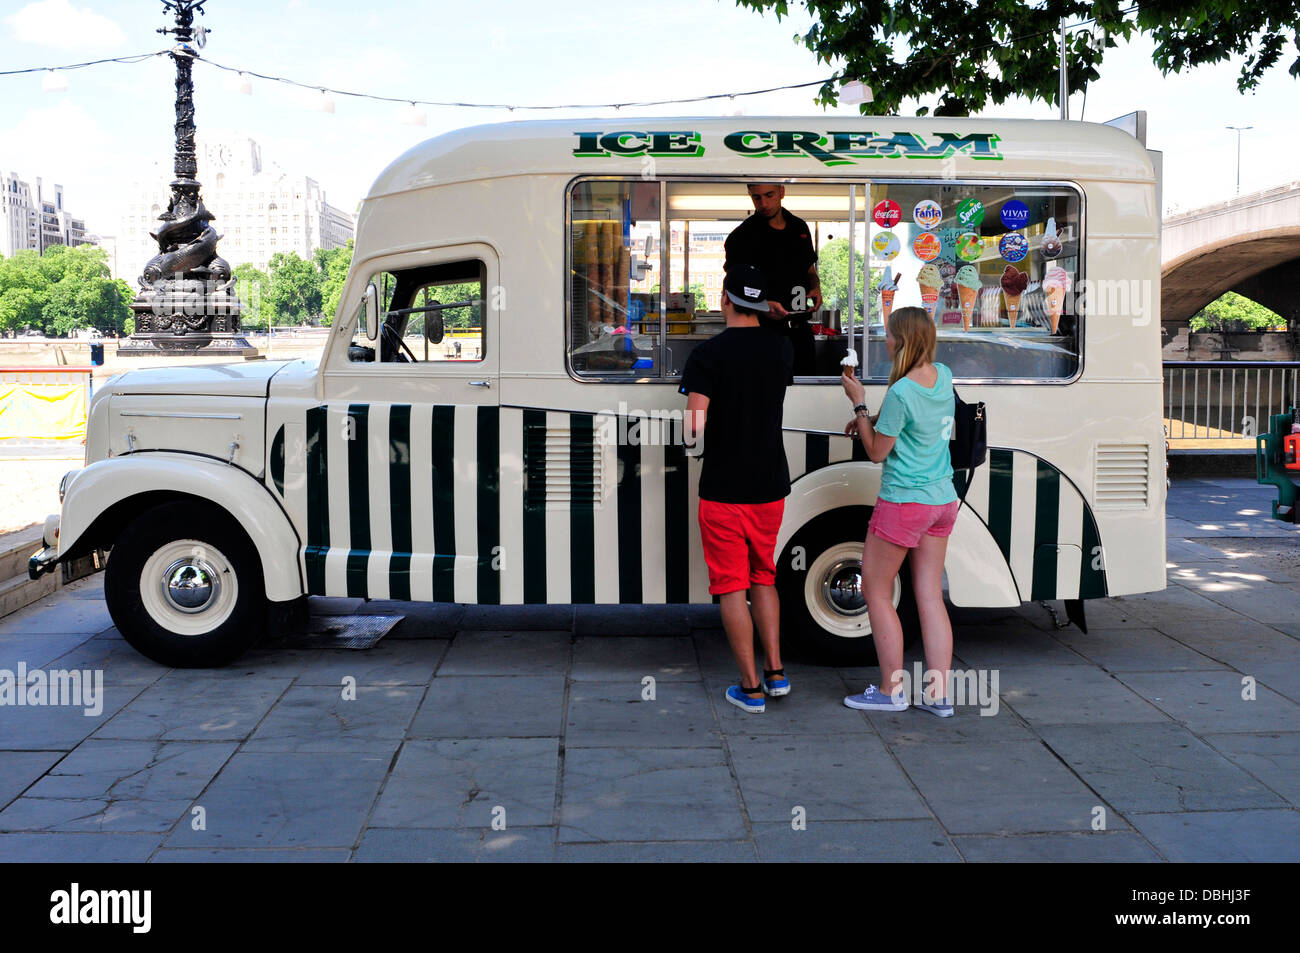 A couple buying ice cream from a van, South Bank, London, UK - Stock Image